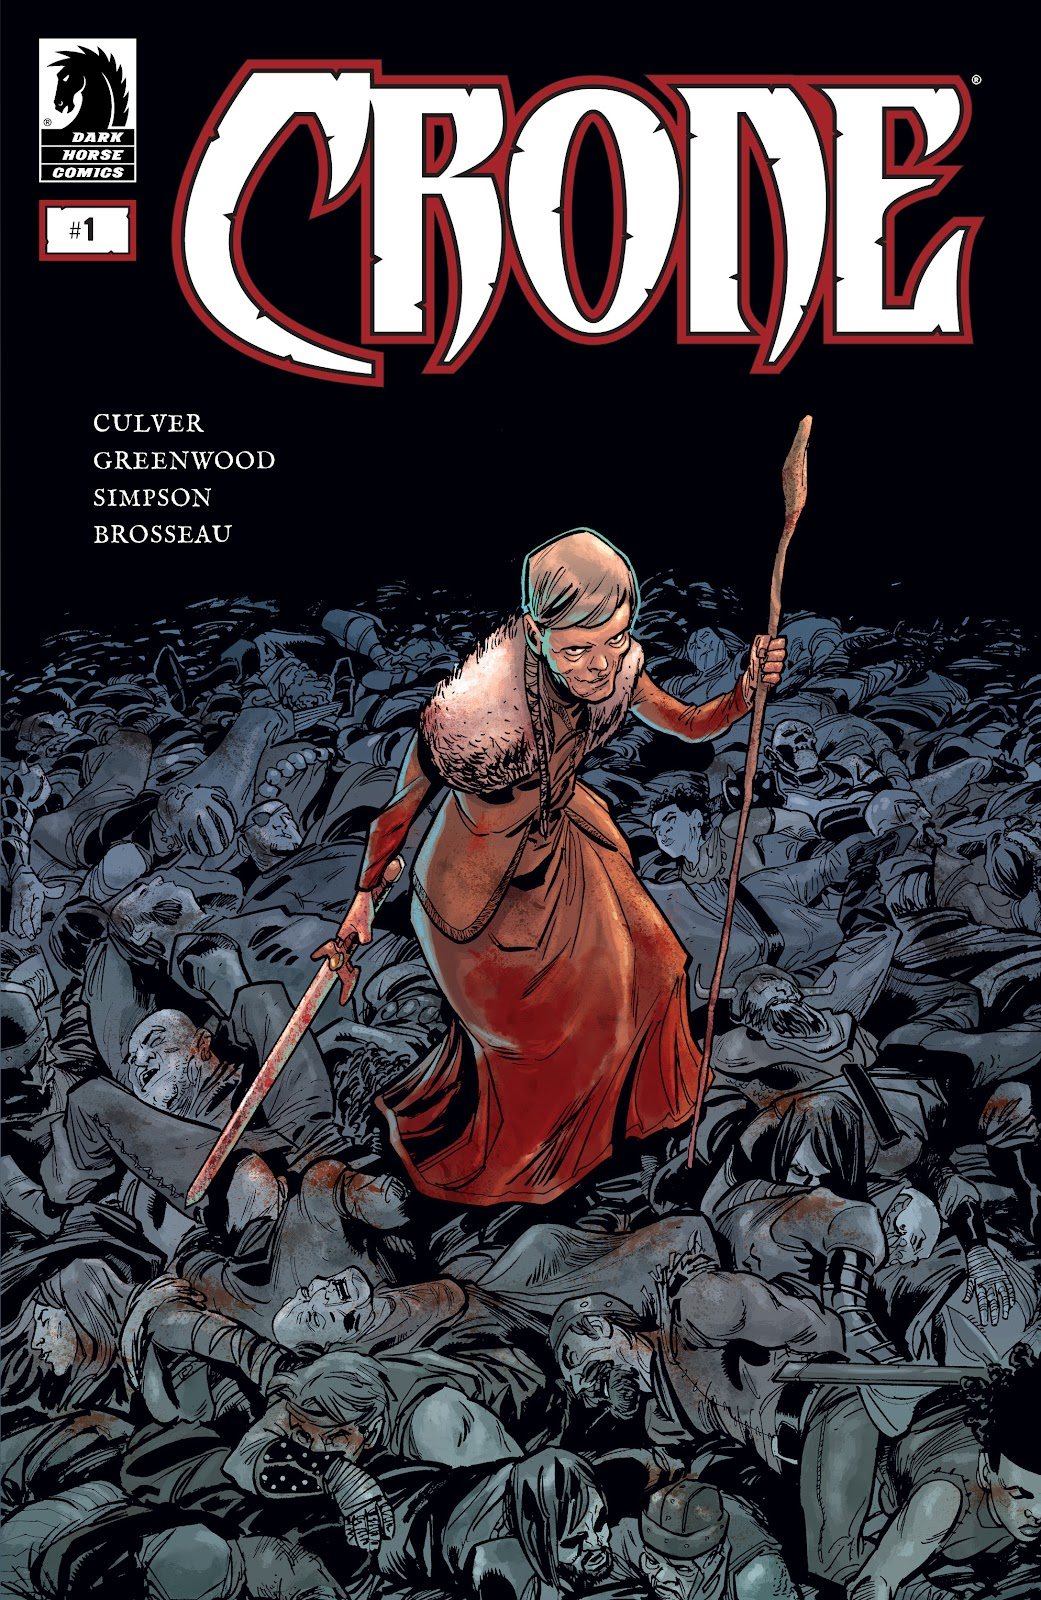 Read online Crone comic -  Issue #1 - 1